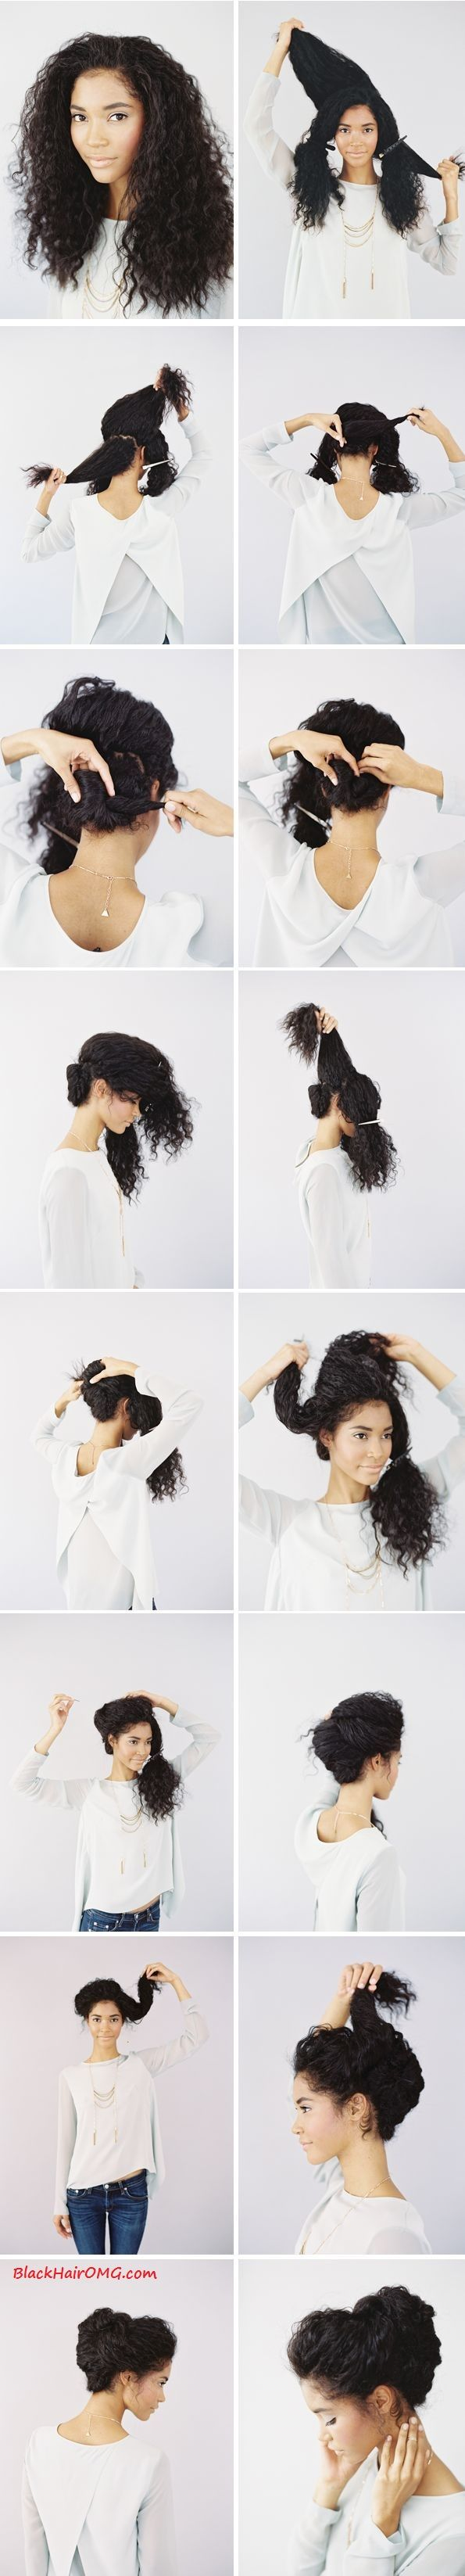 Natural hair style pictures naturally curly hair naturally curly